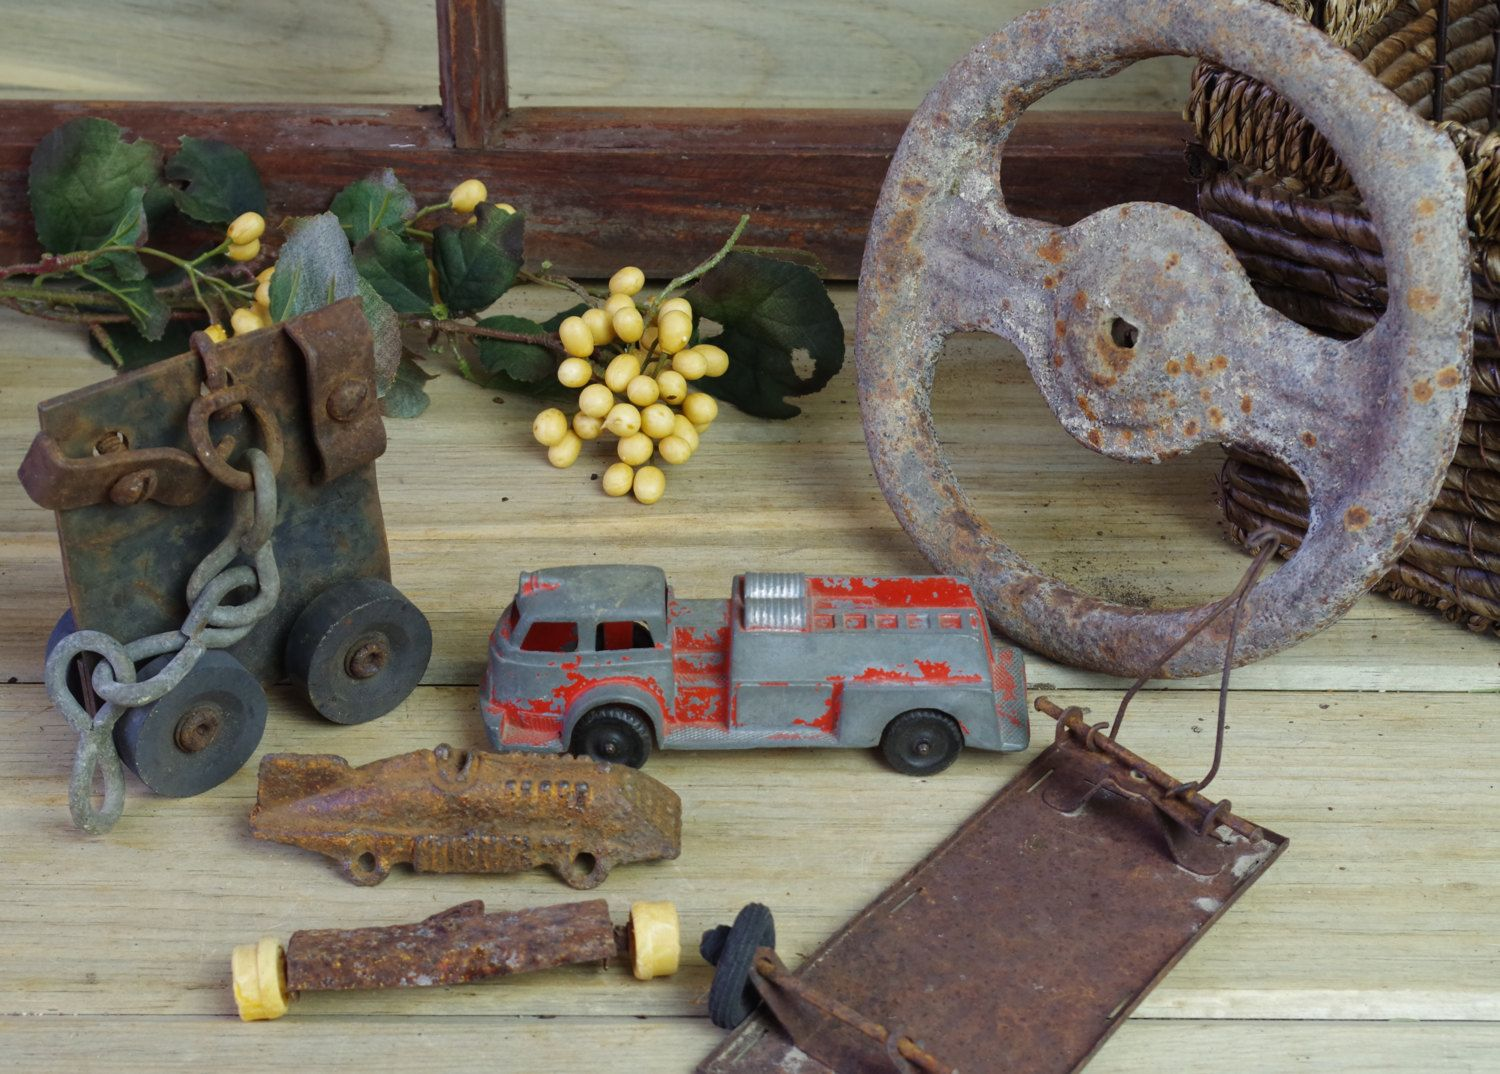 Vintage Fire Engine, Antique Toy Race Car, Train Tracks, Skate, Arrow, Steering…